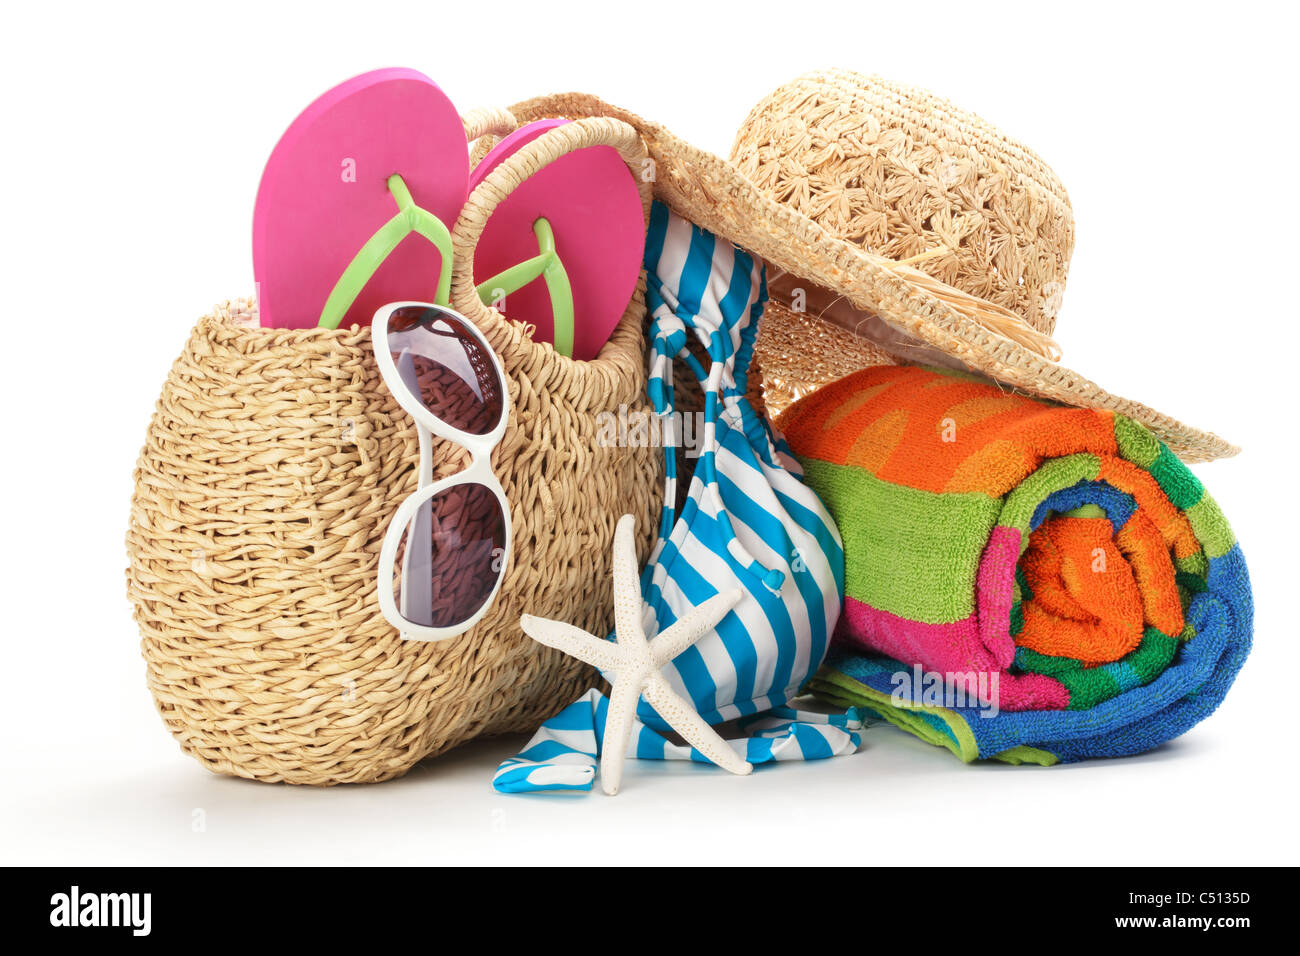 Beach items with swimming suit,towel,flip flops and sunglasses.Isolated on white background. - Stock Image